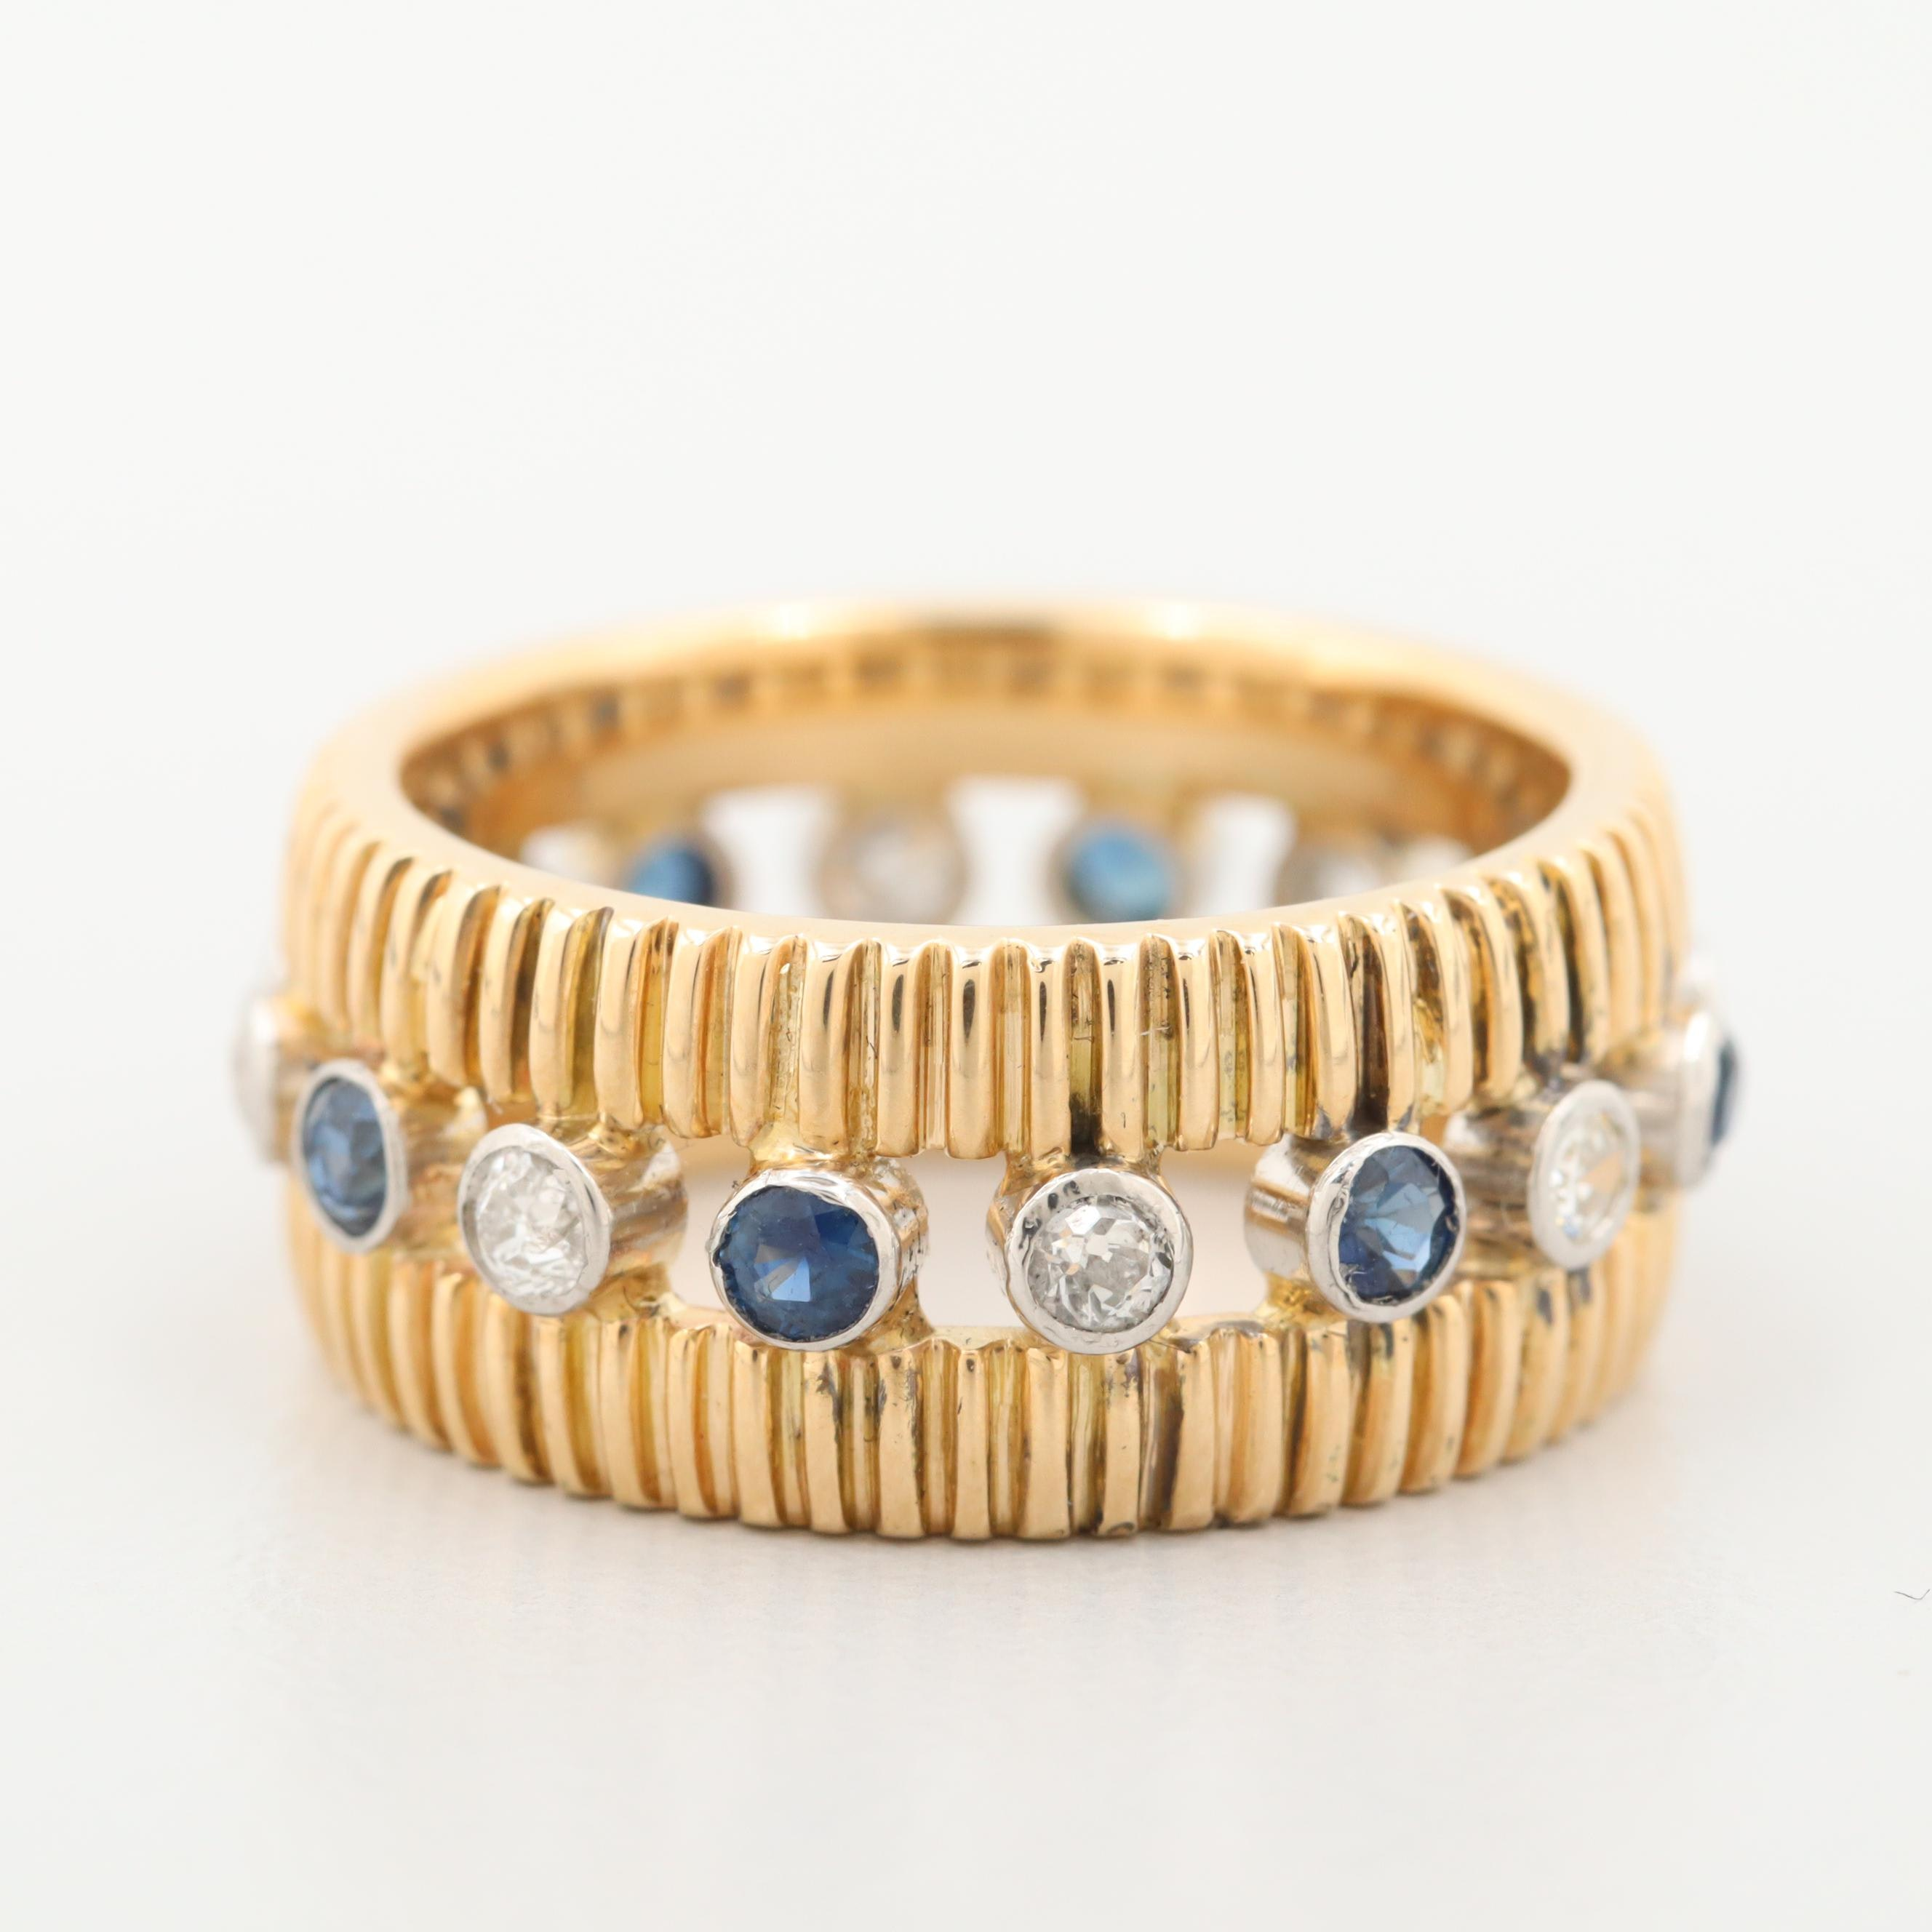 14K Yellow Gold Diamond and Blue Sapphire Eternity Band with White Gold Accents